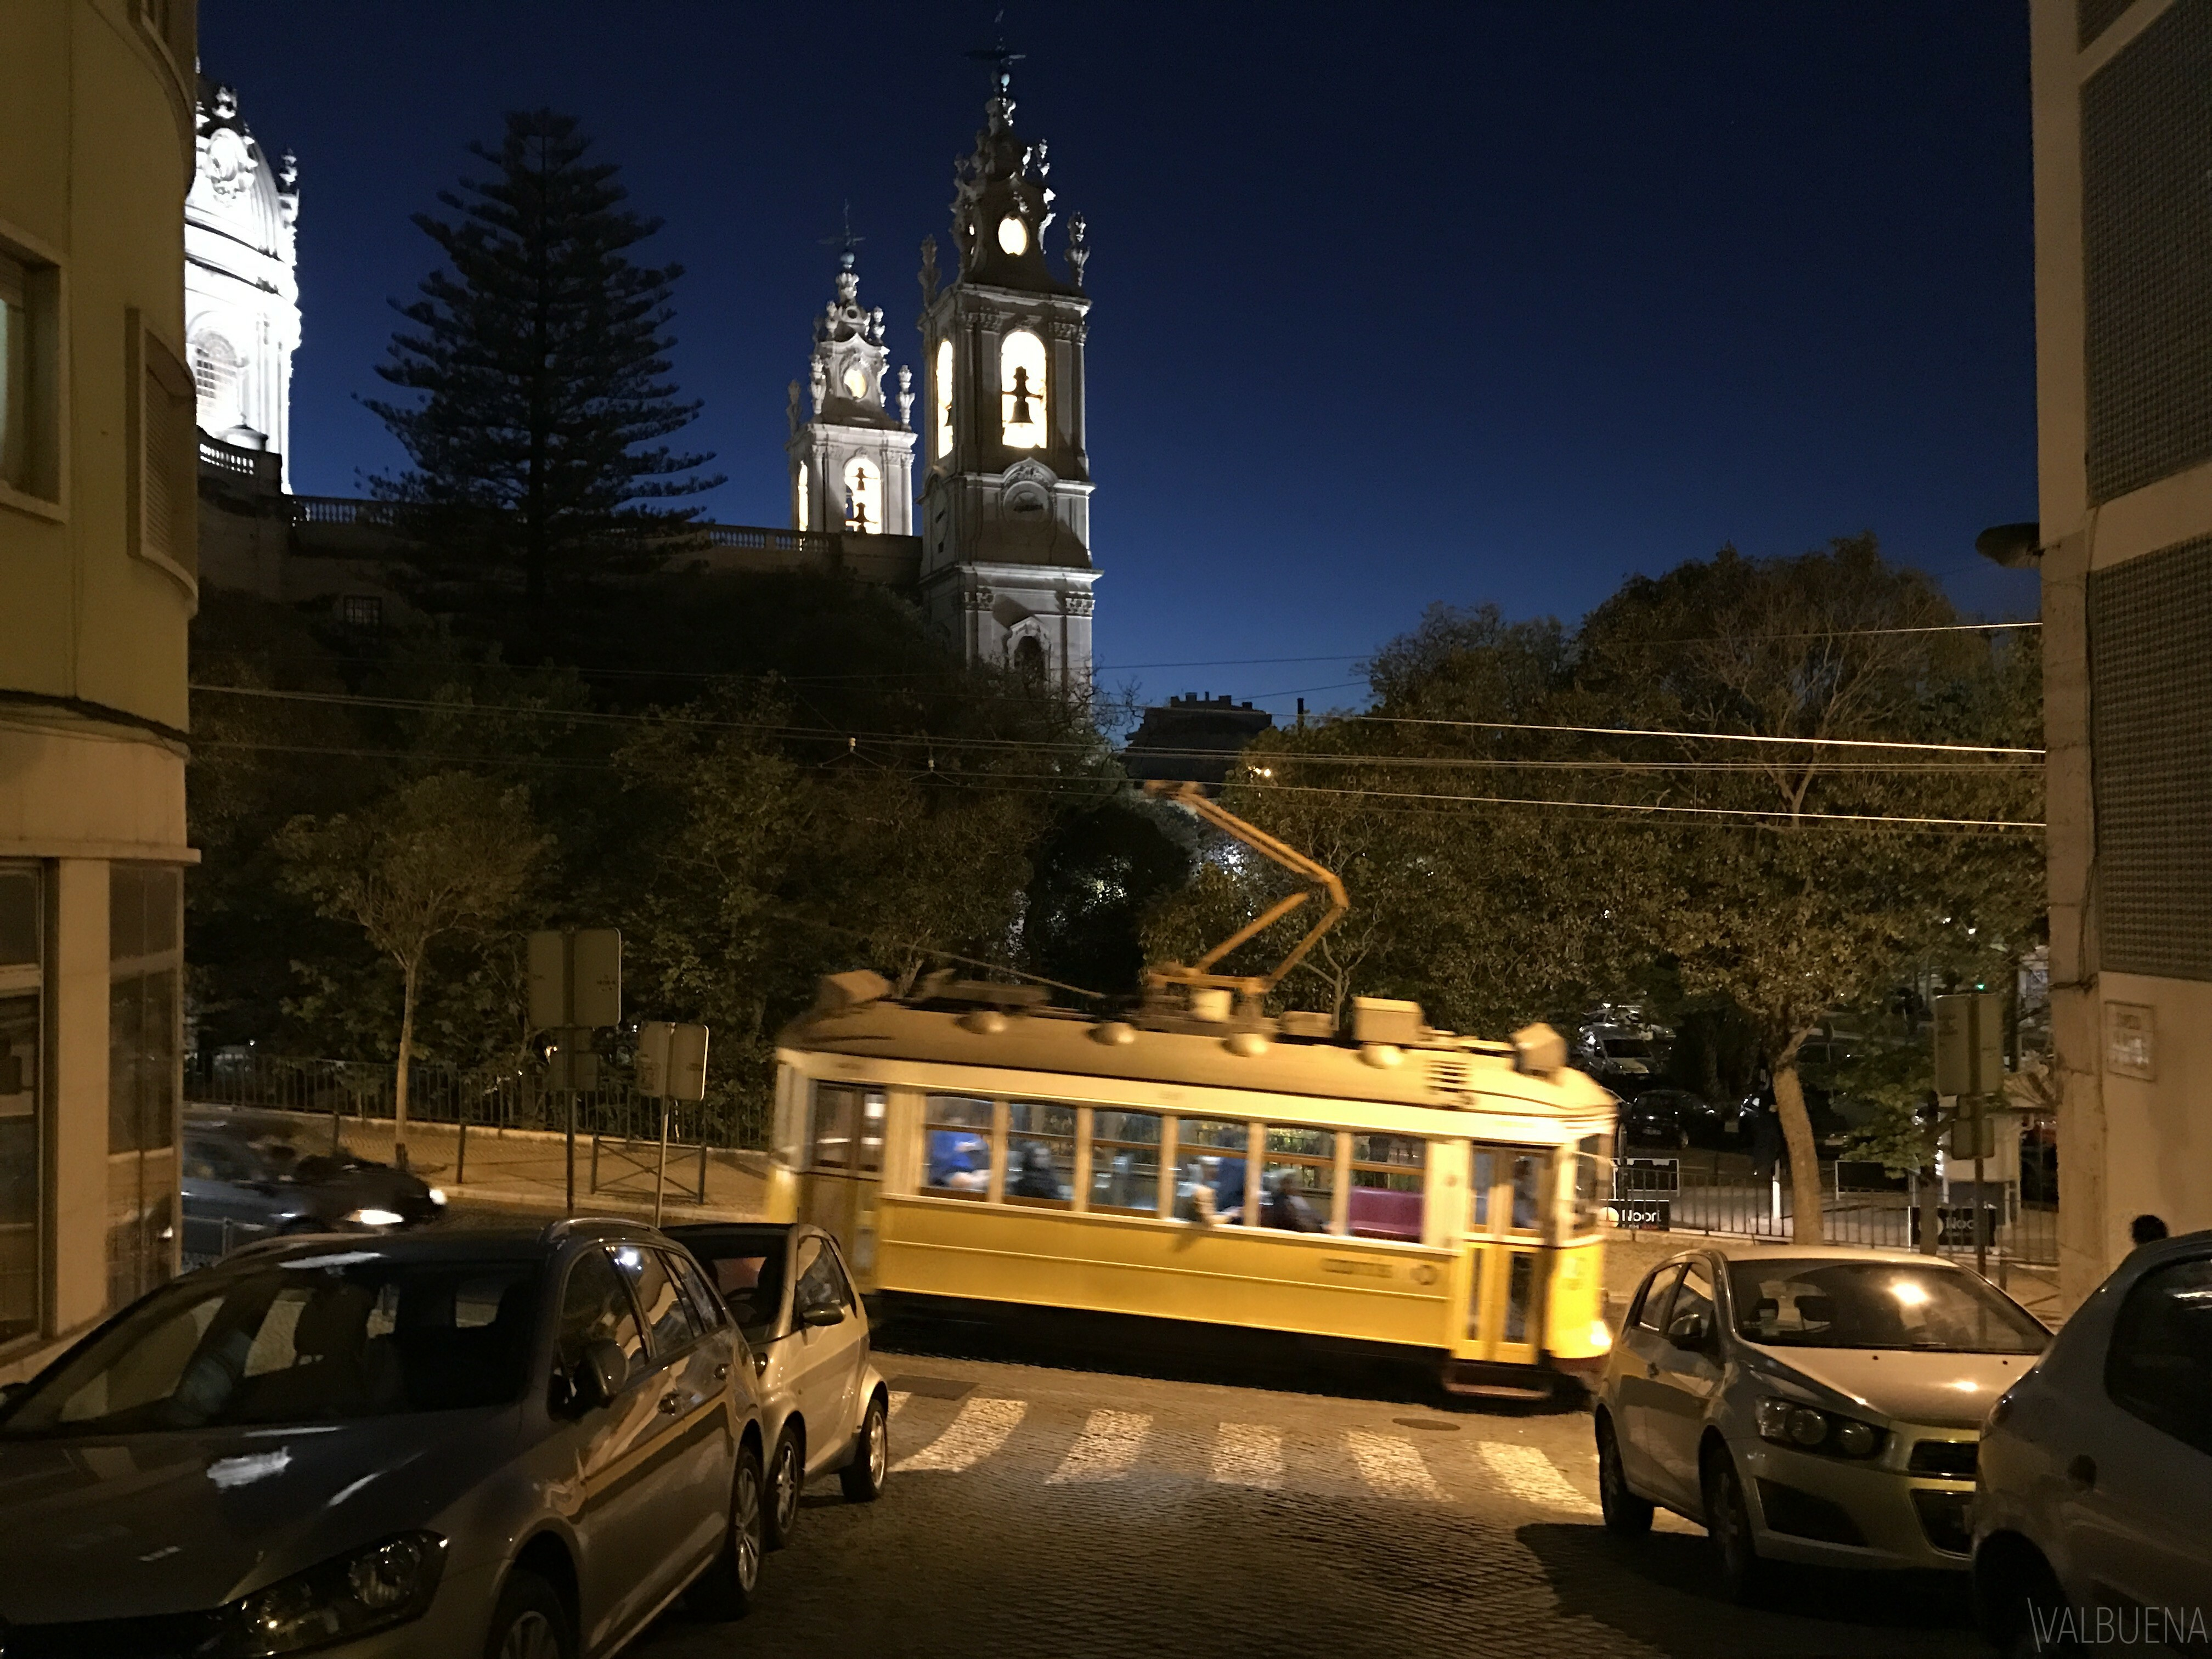 The tram is an easy way to get to Estrela Basilica, Estrela Park and the British Cemetery